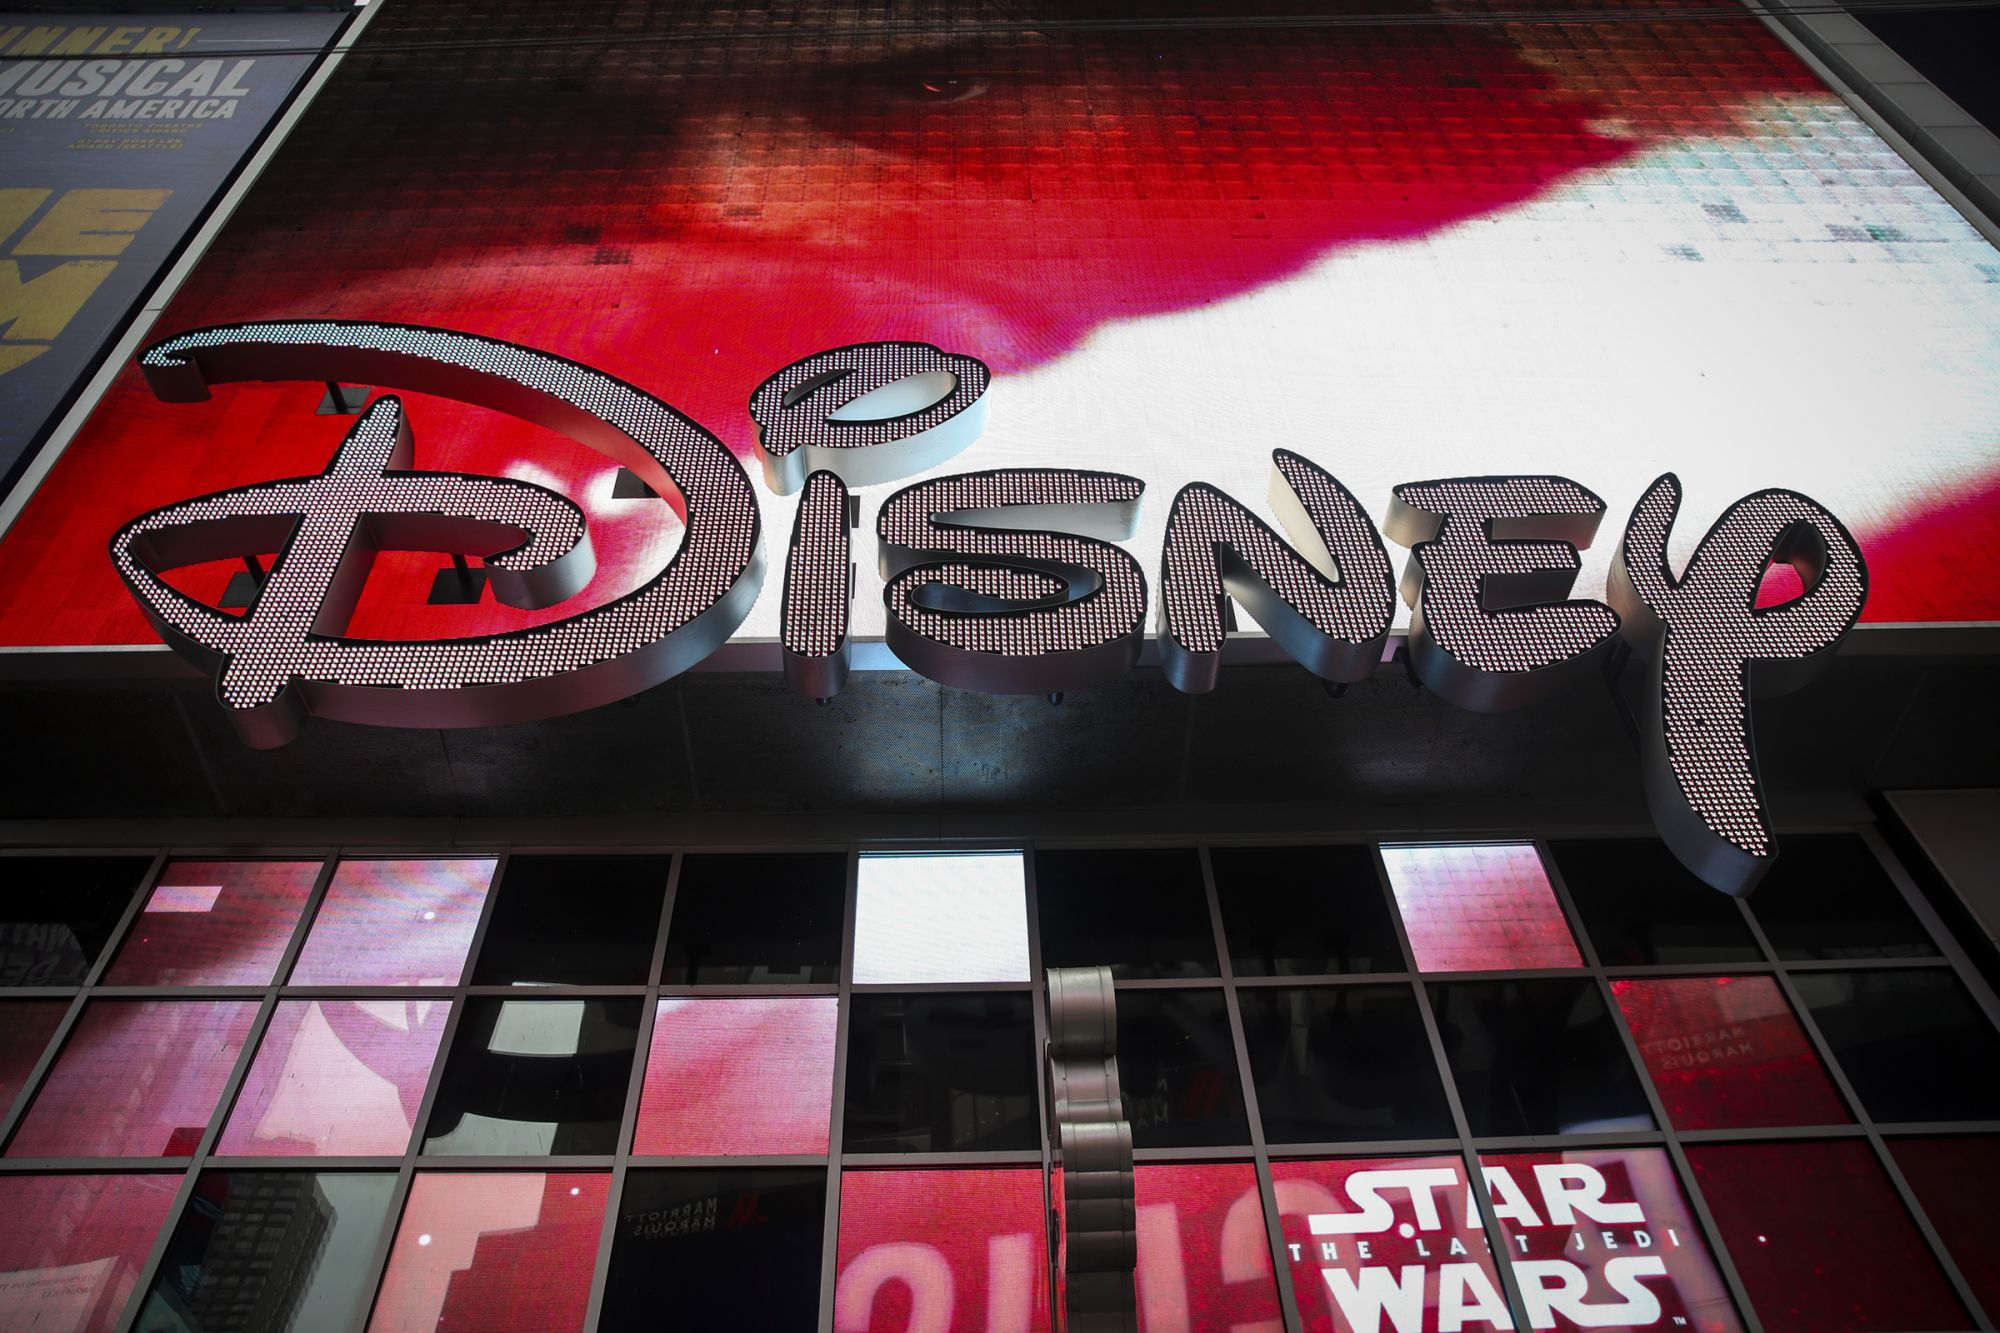 That Time Disney Rejected A Woman Job Applicant...Because She Was A Woman